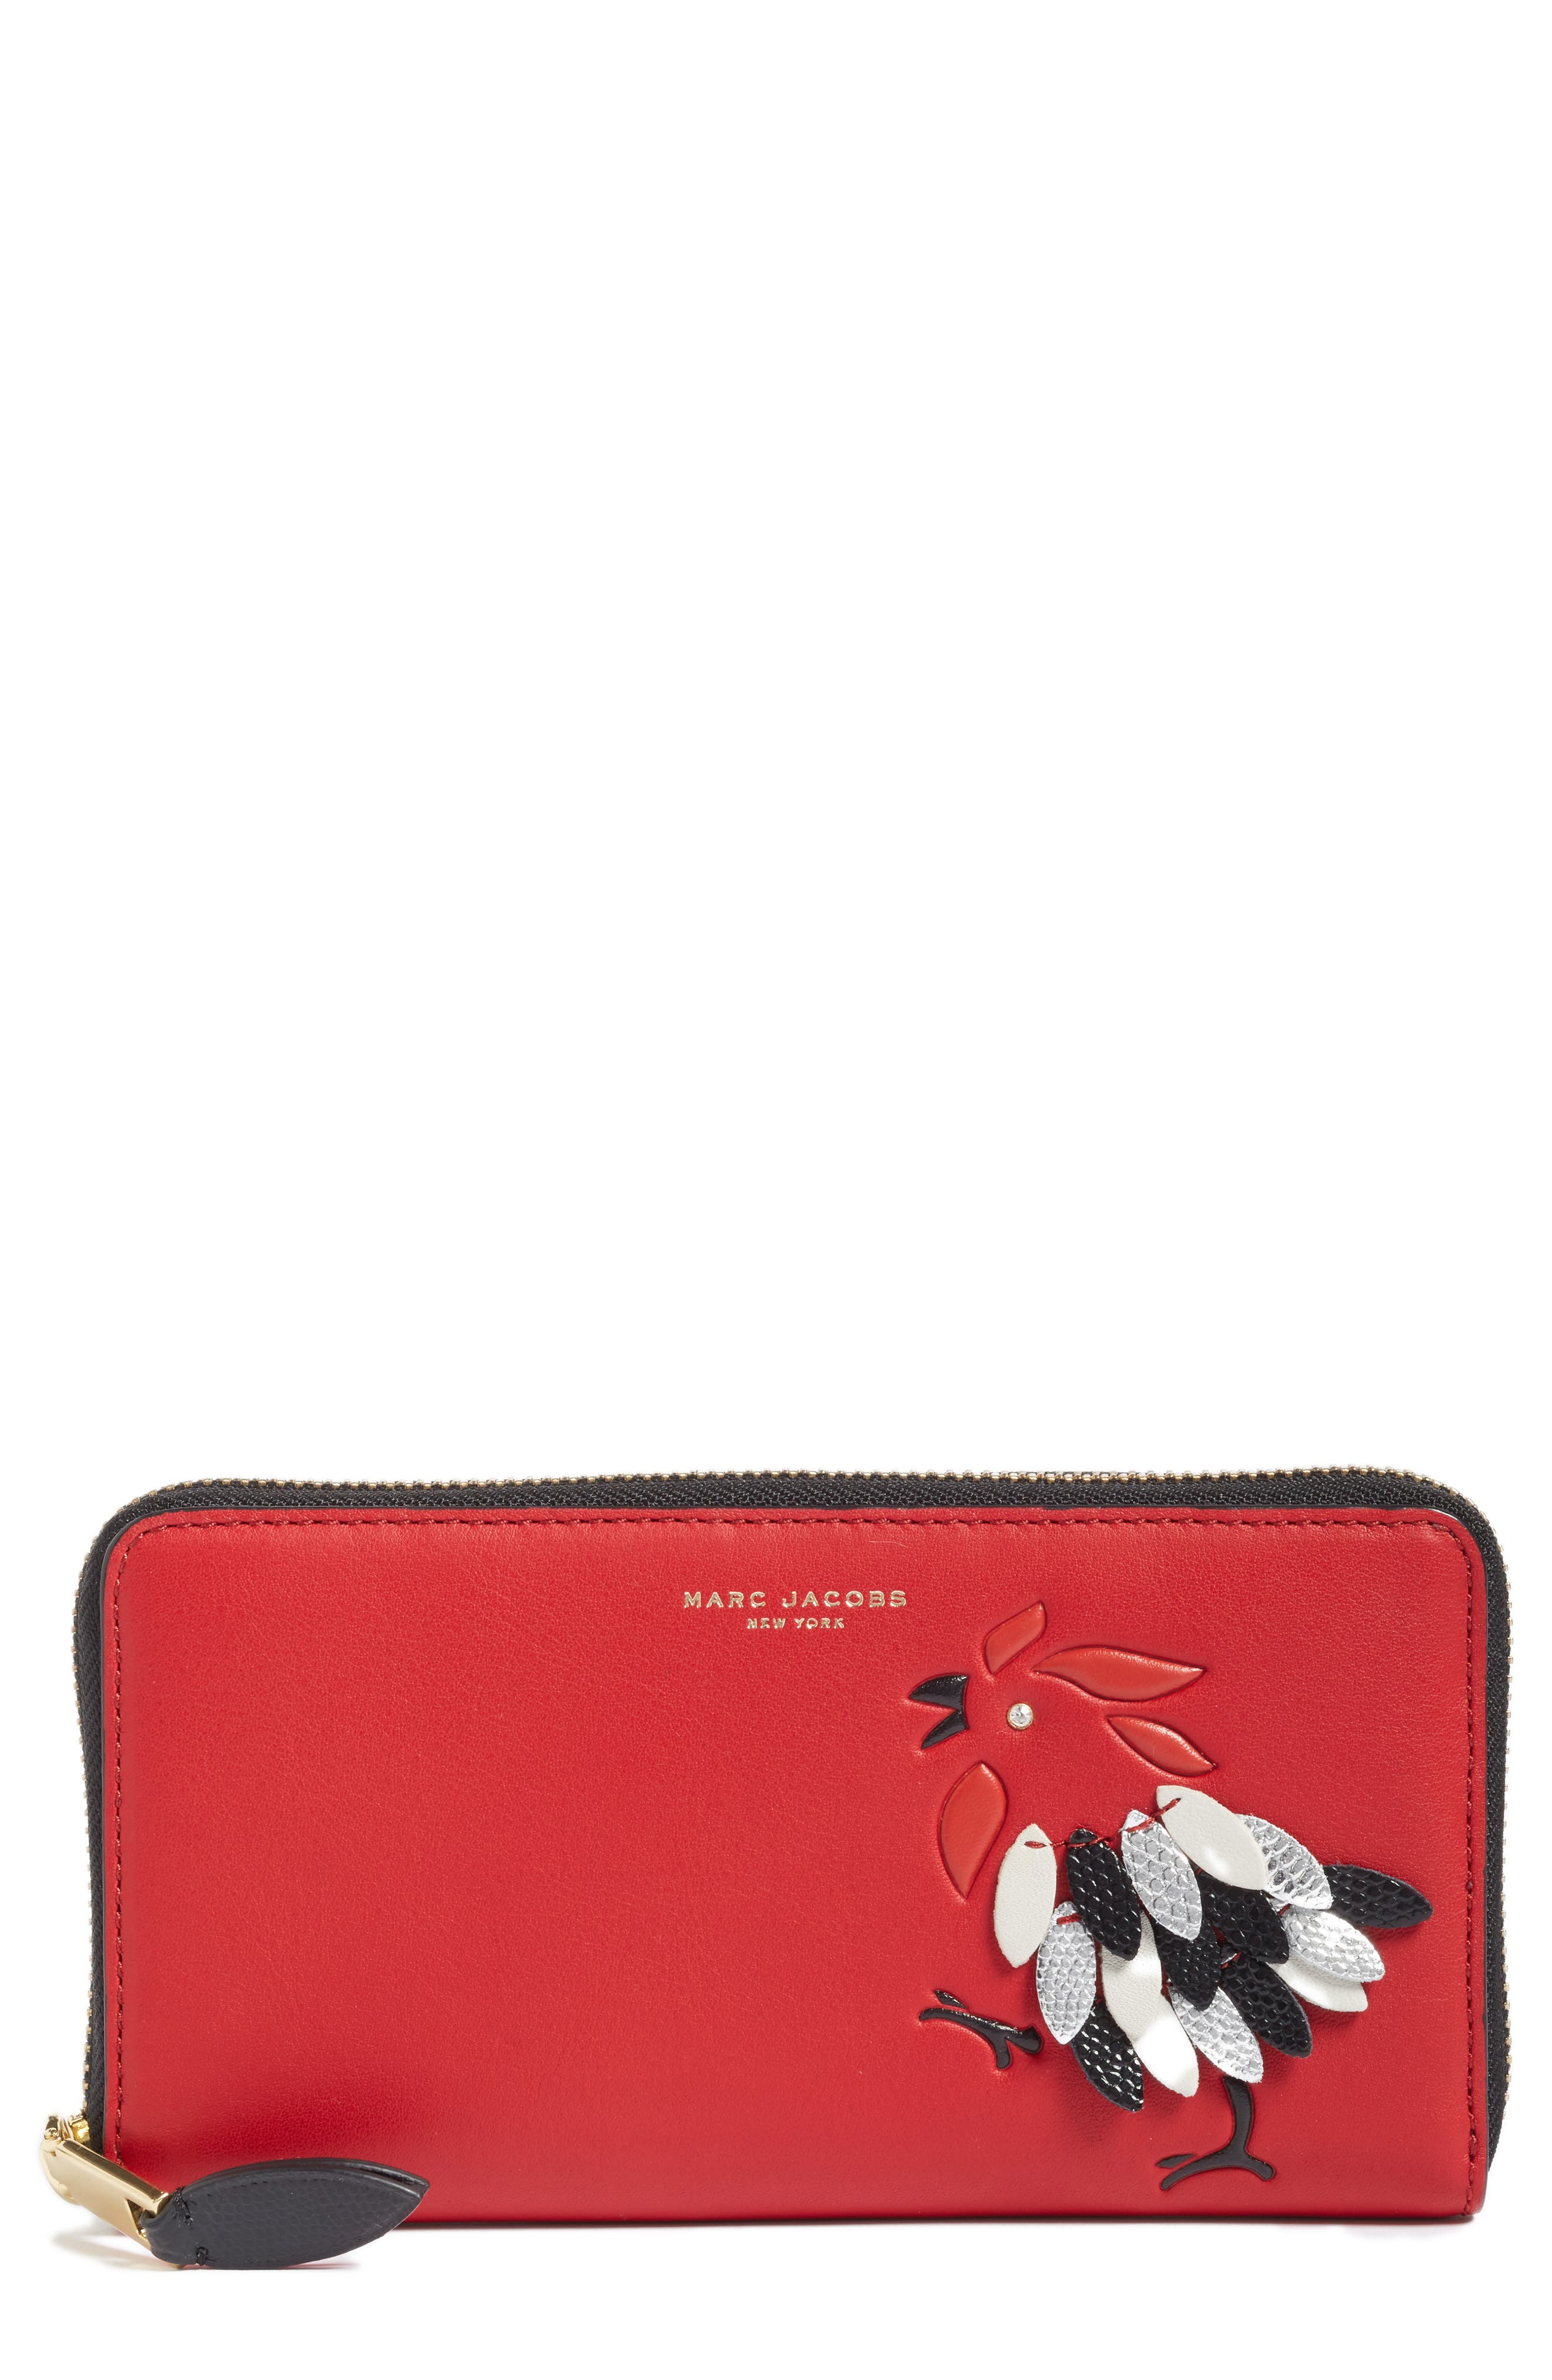 Rooster Continental Wallet,                             Main thumbnail 1, color,                             647